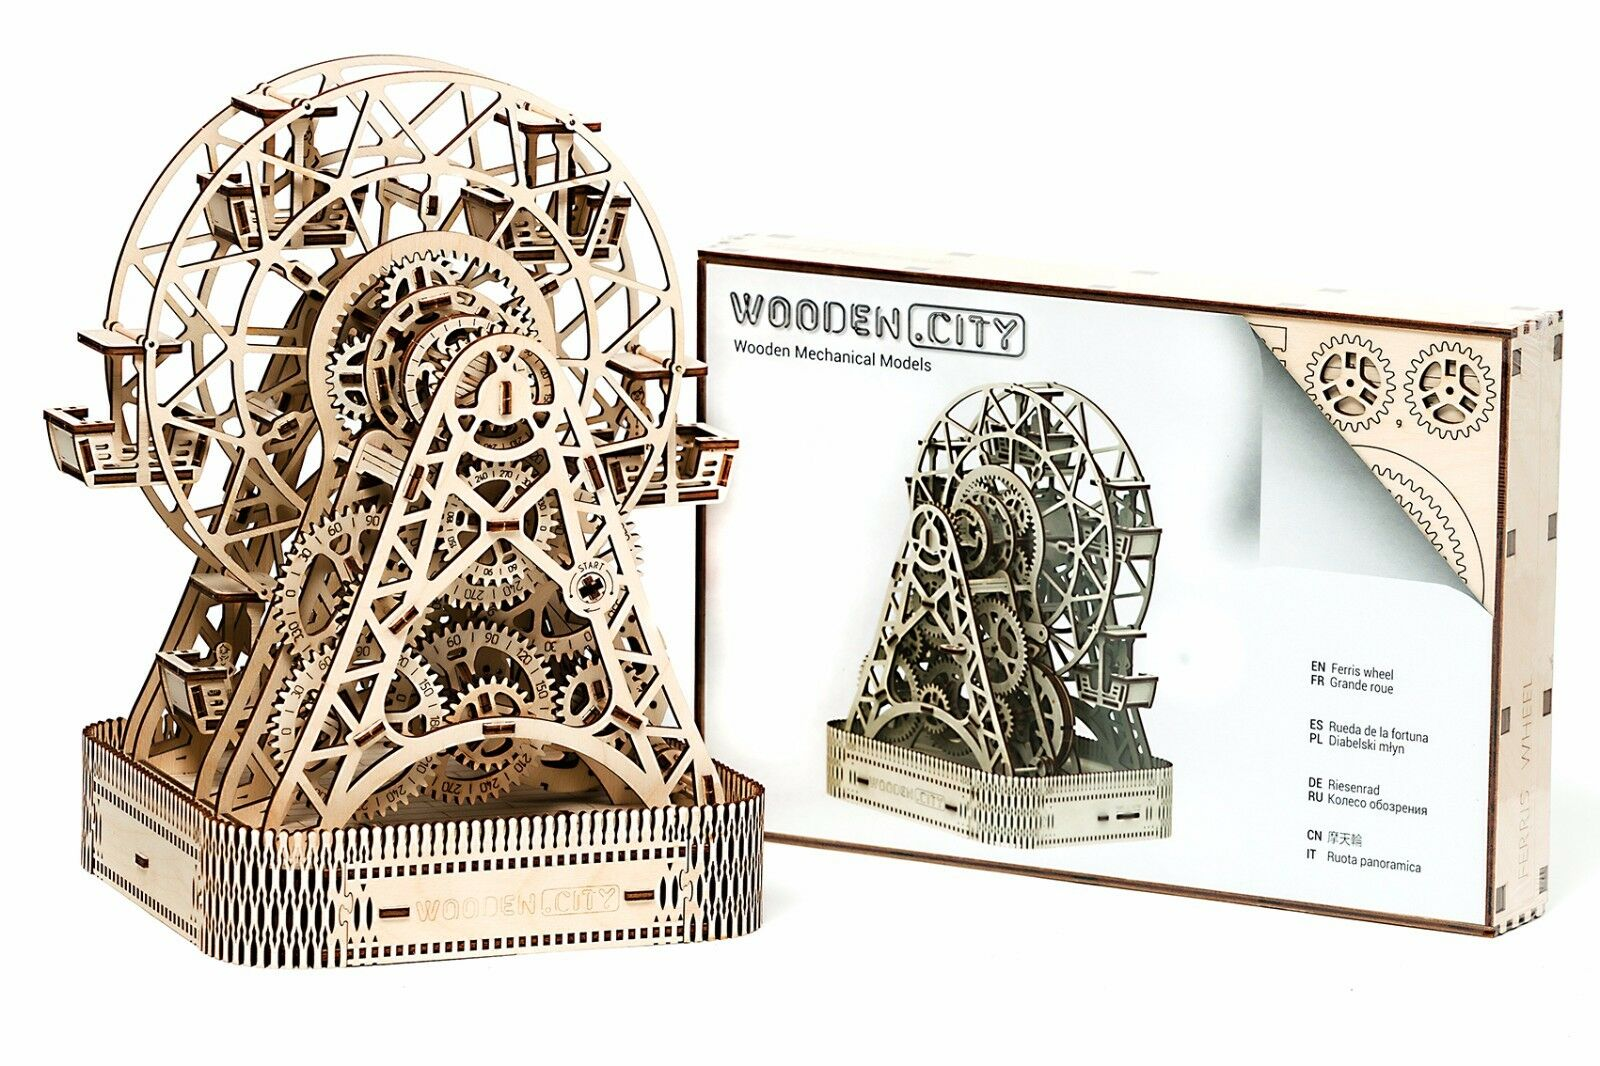 FERRIS WHEEL - WOODEN CITY 3D Mechanical Wooden Model